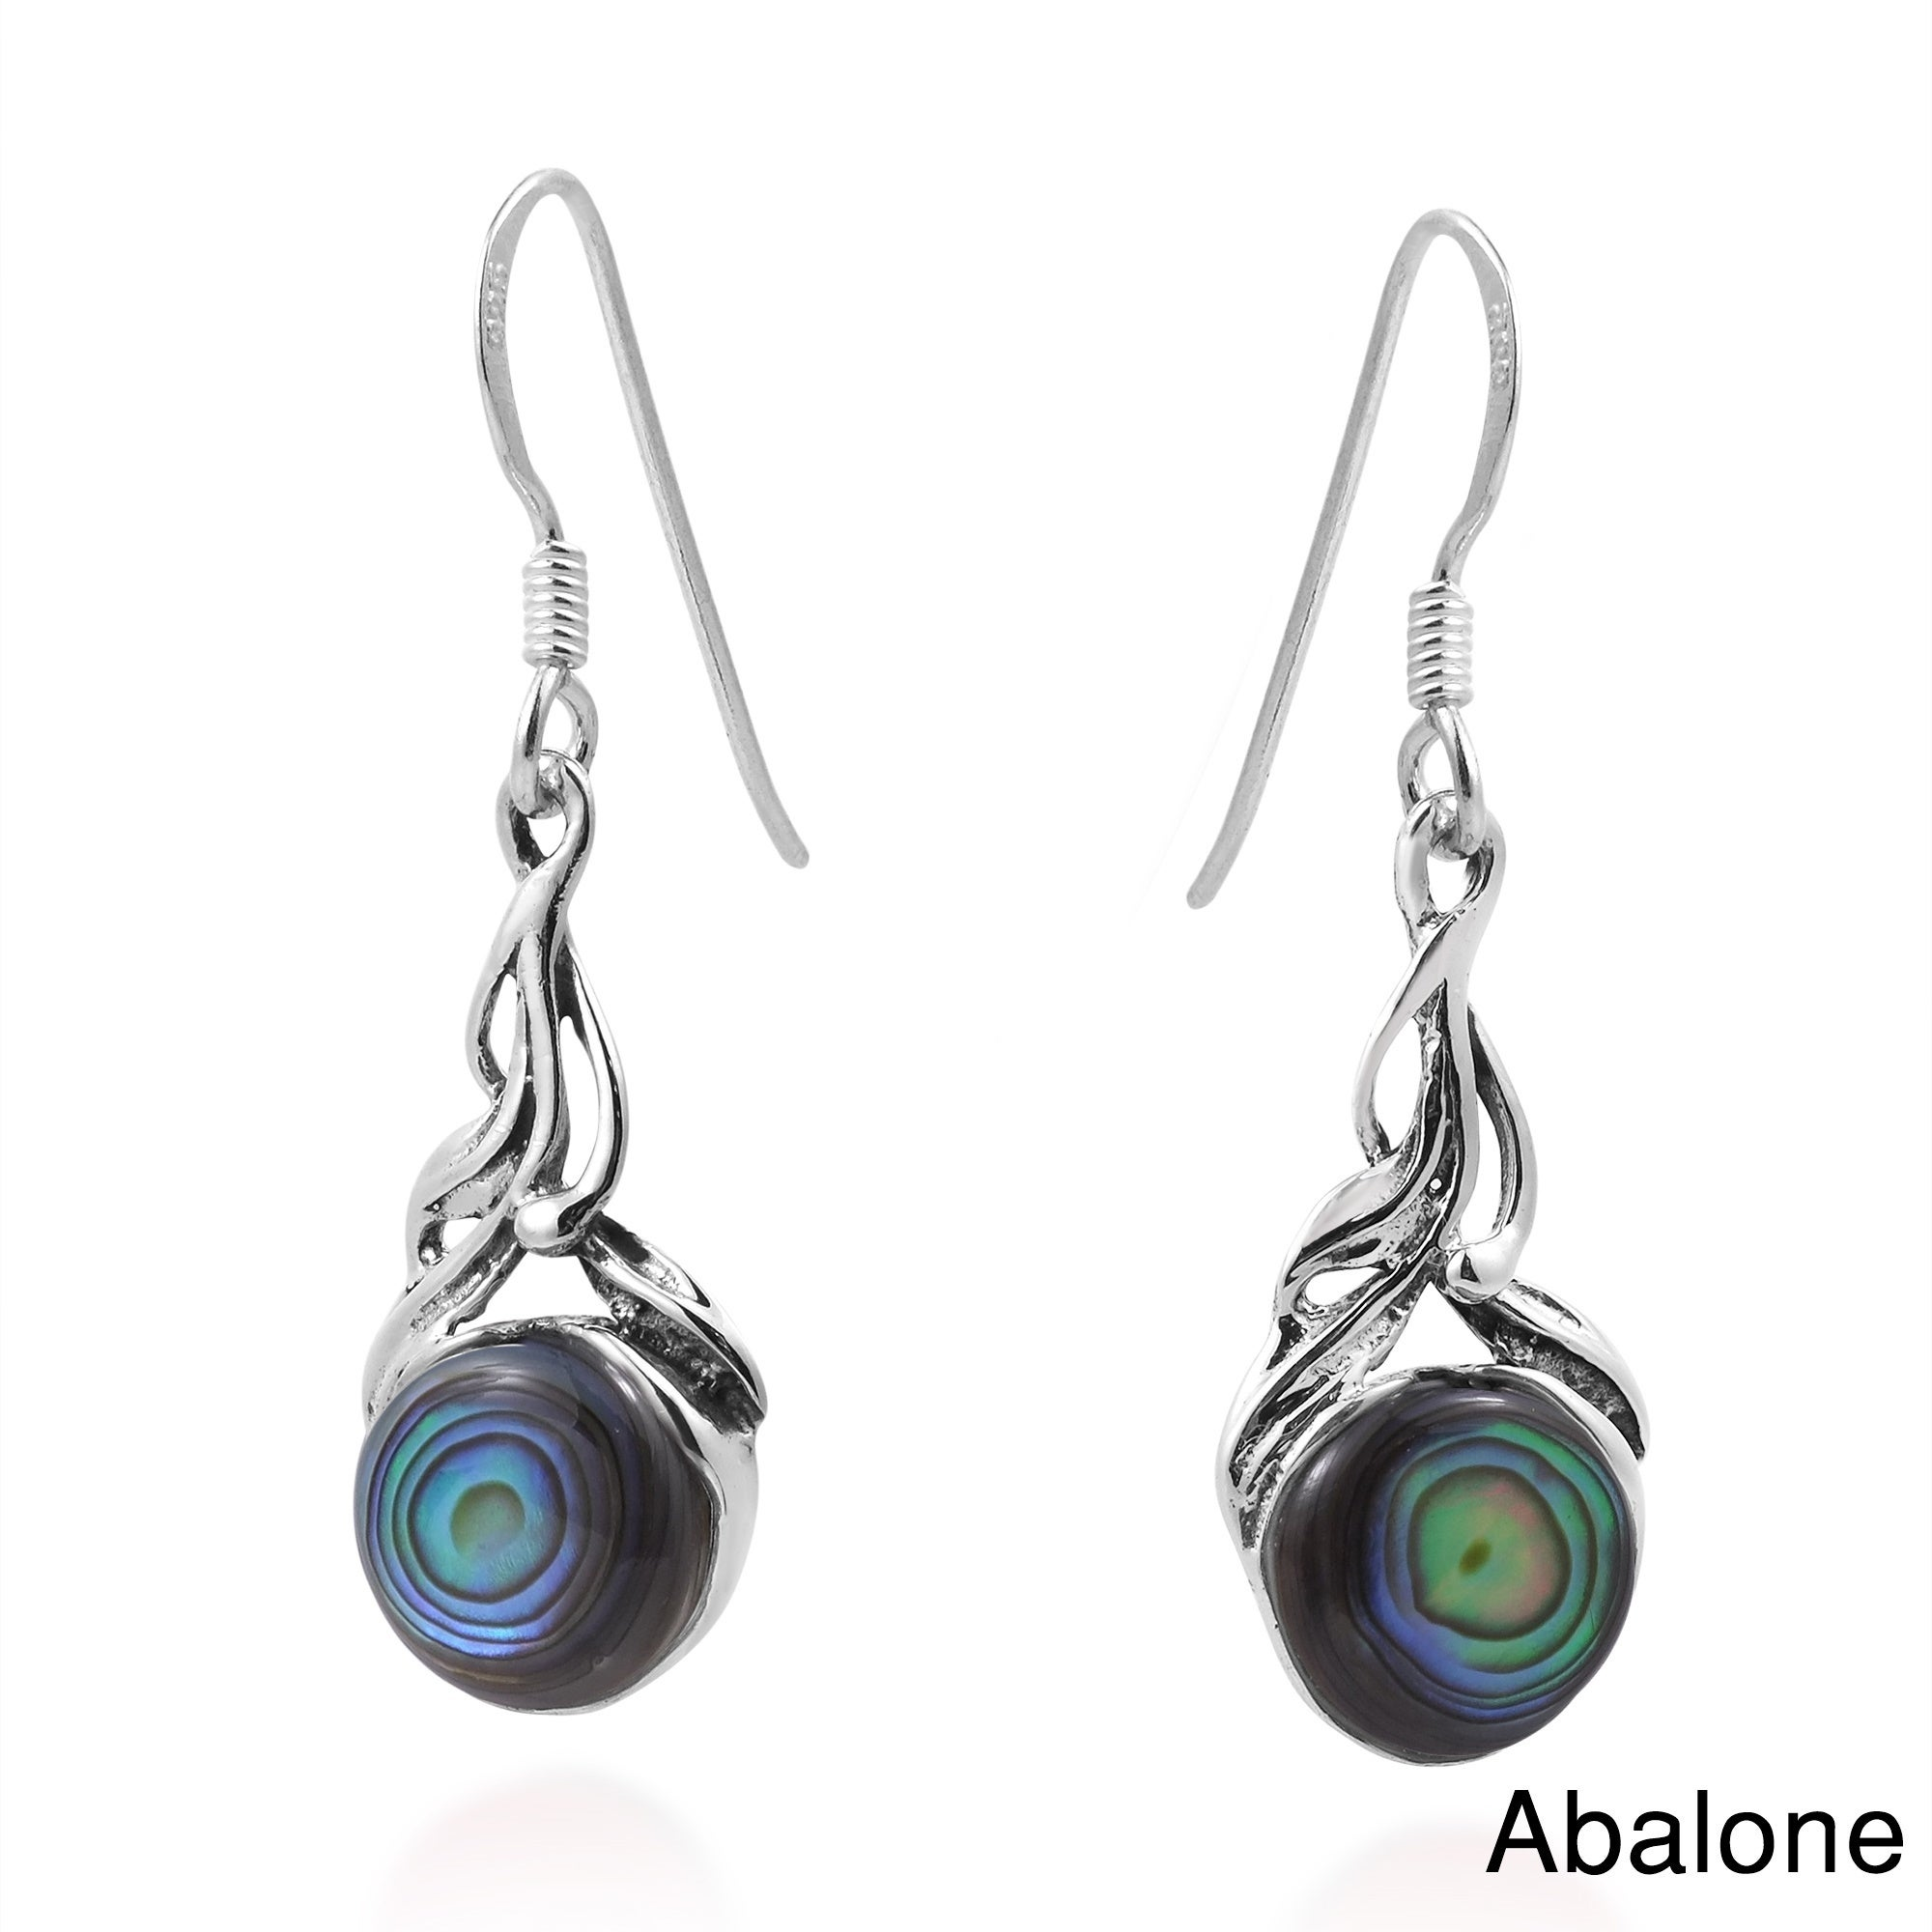 15c64b3d1 Handmade Precious Orb Natural Stone Sterling Silver Dangle Earrings  (Thailand)